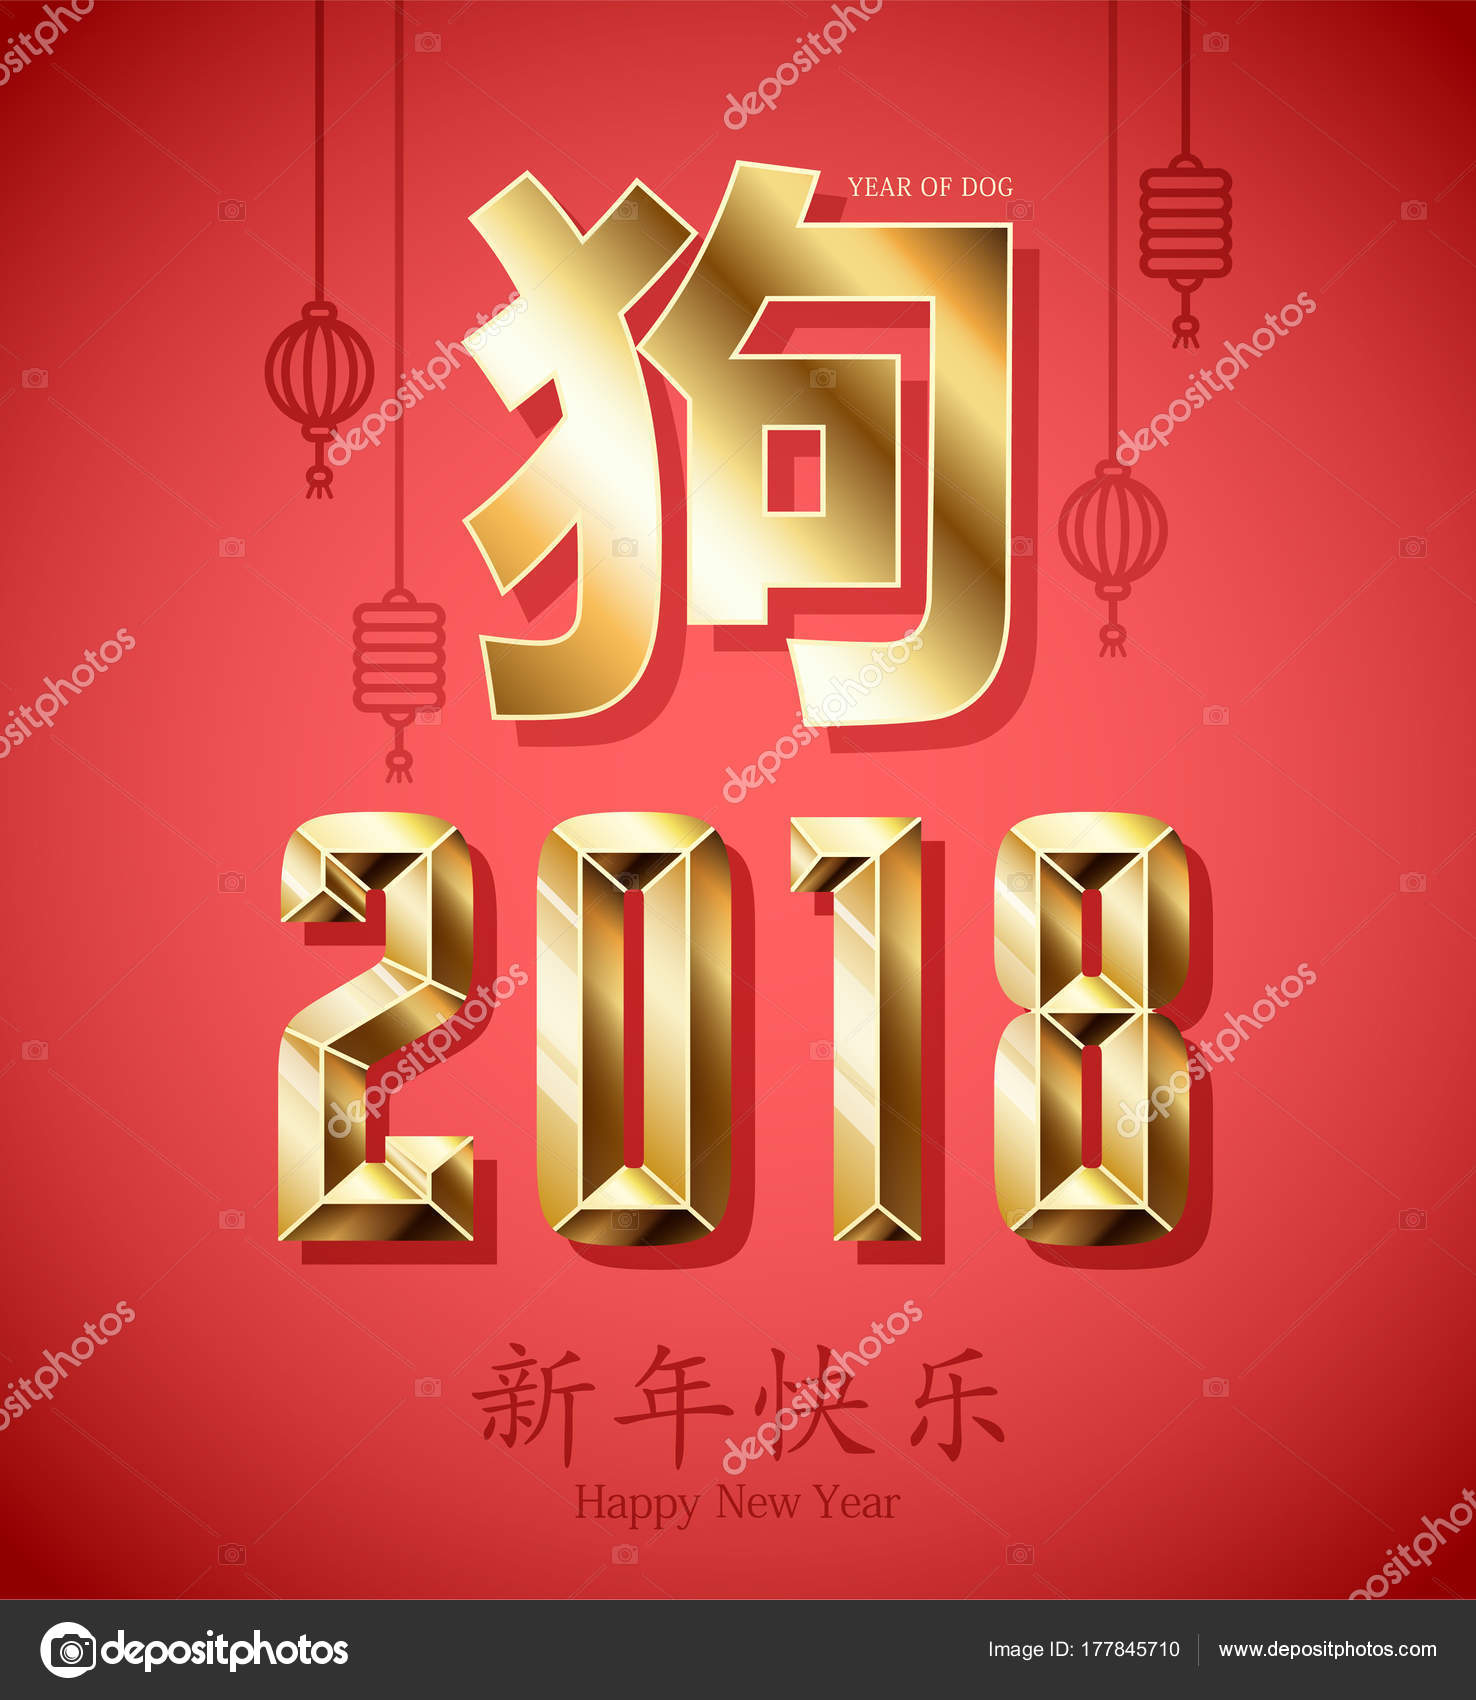 chinese new year 2018 year yellow earthen dog gold symbol of 2018 on red background used for advertising greetings discounts